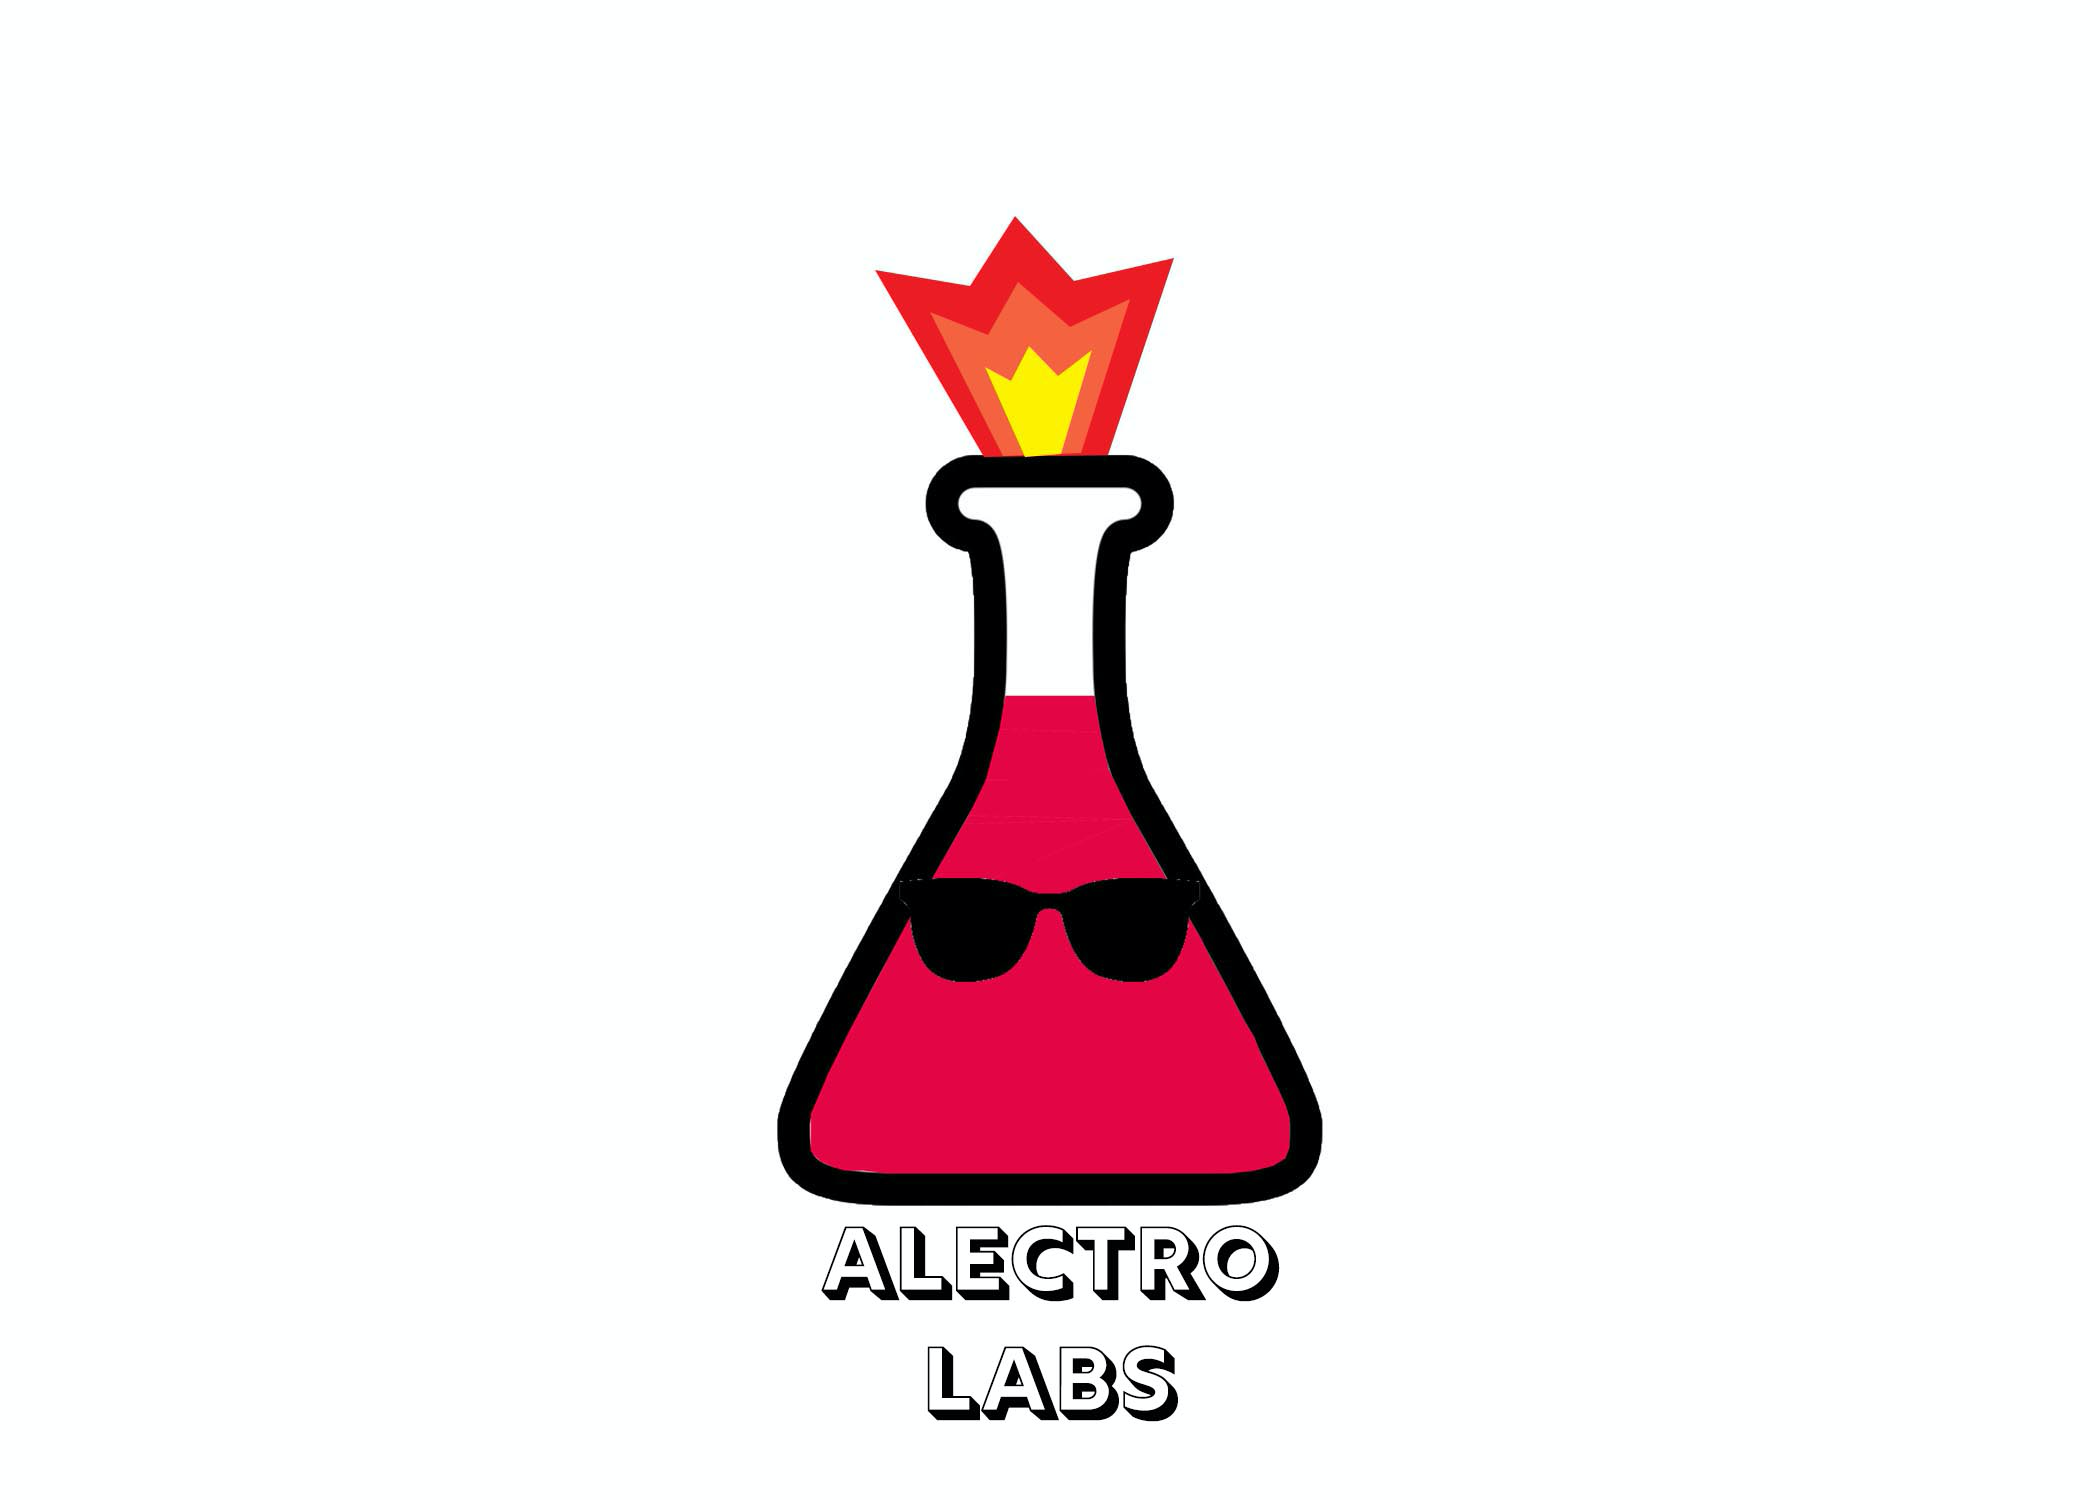 Alectro Labs